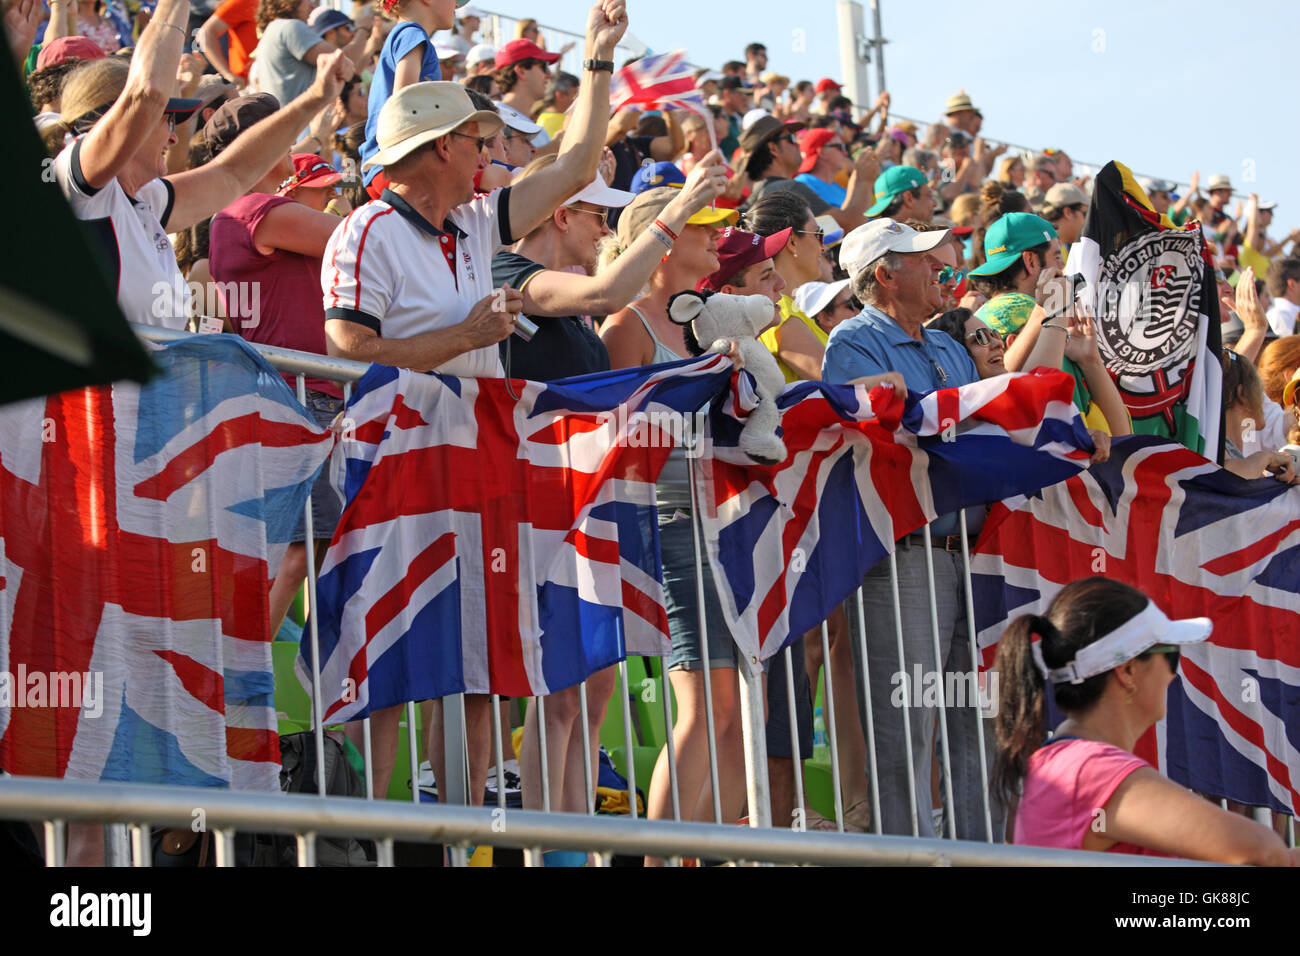 Rio de Janeiro, Brazil. 19th August, 2016. Delighted GBR fans as Nick Skelton of Great Britain wins the Olympic - Stock Image